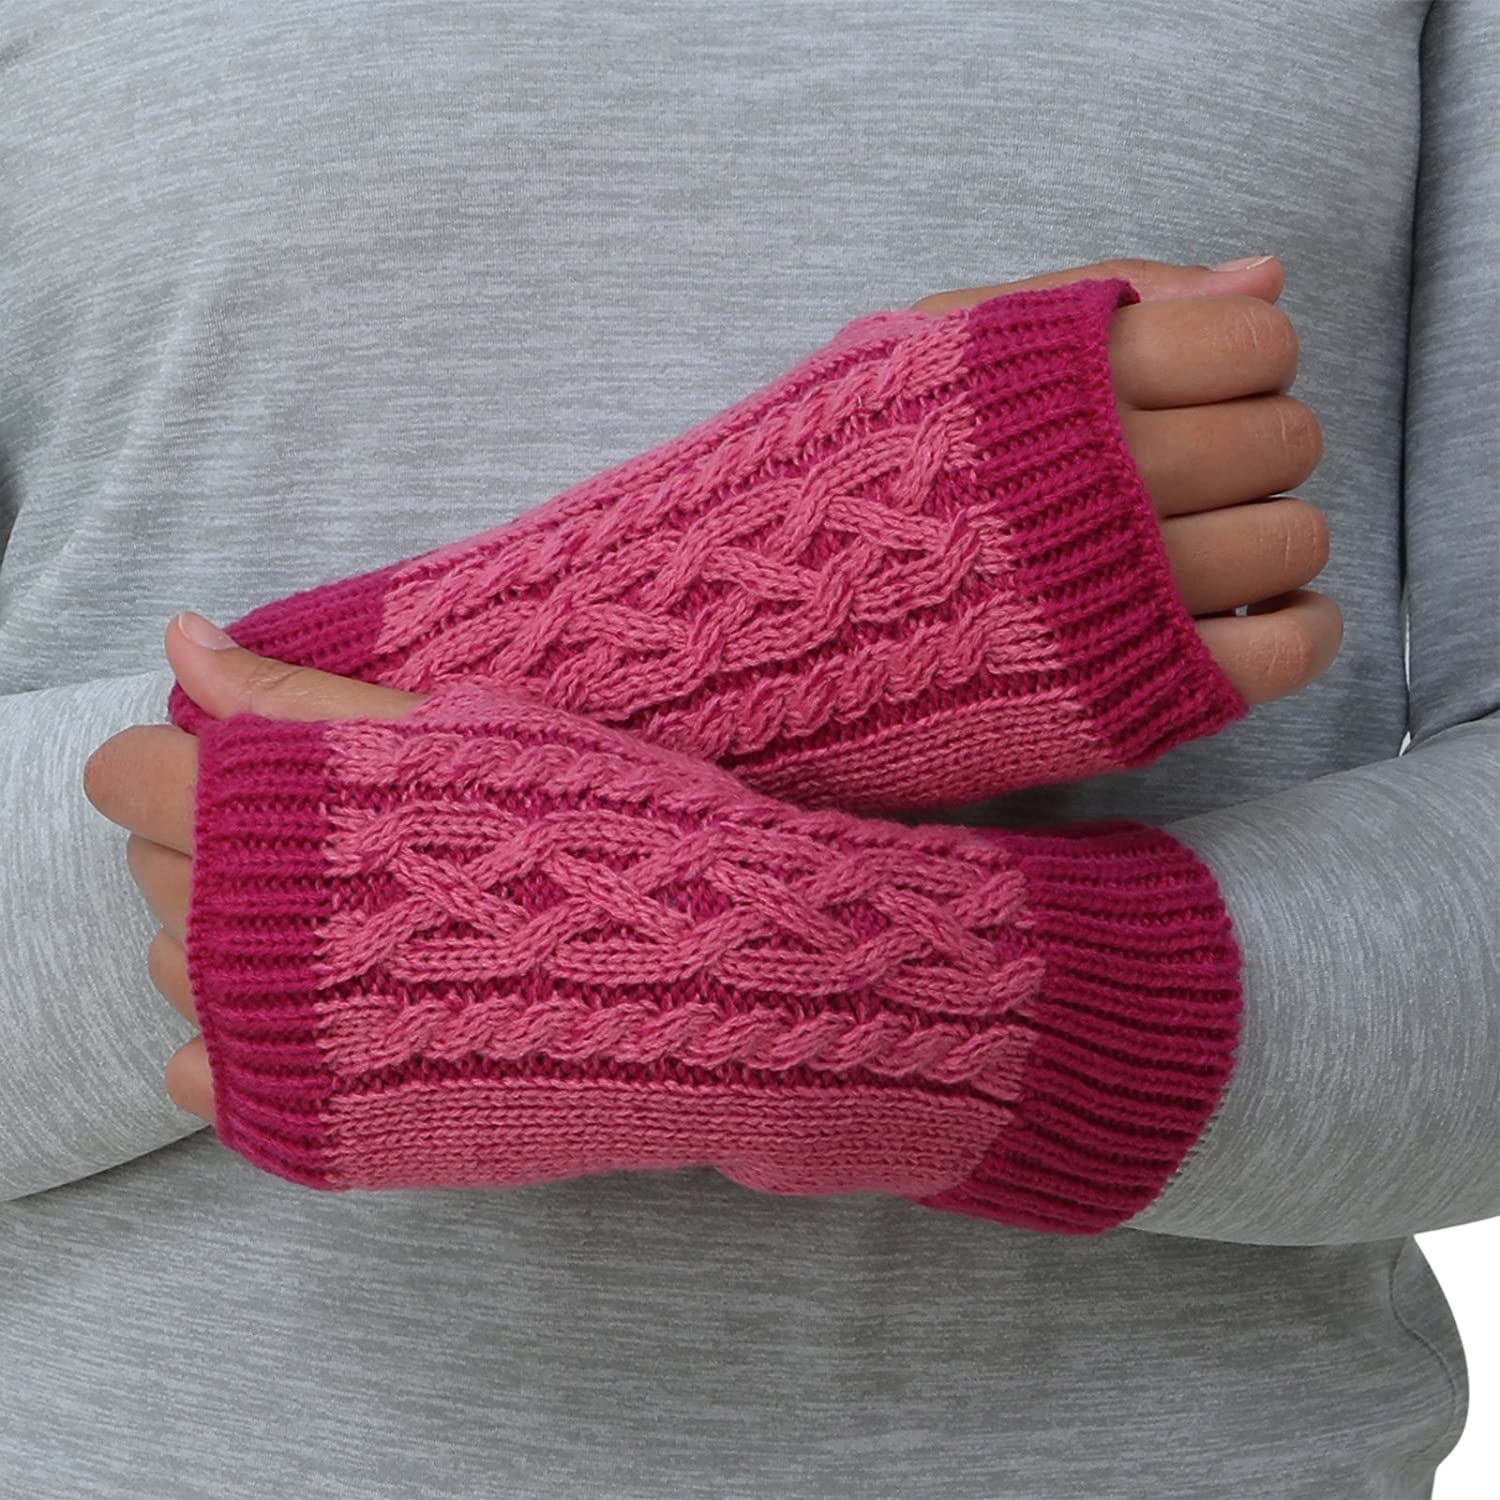 TrailHeads Cable Knit Women's Wrist Warmers   Hand Warmers   Fingerless Gloves - 2 Colors